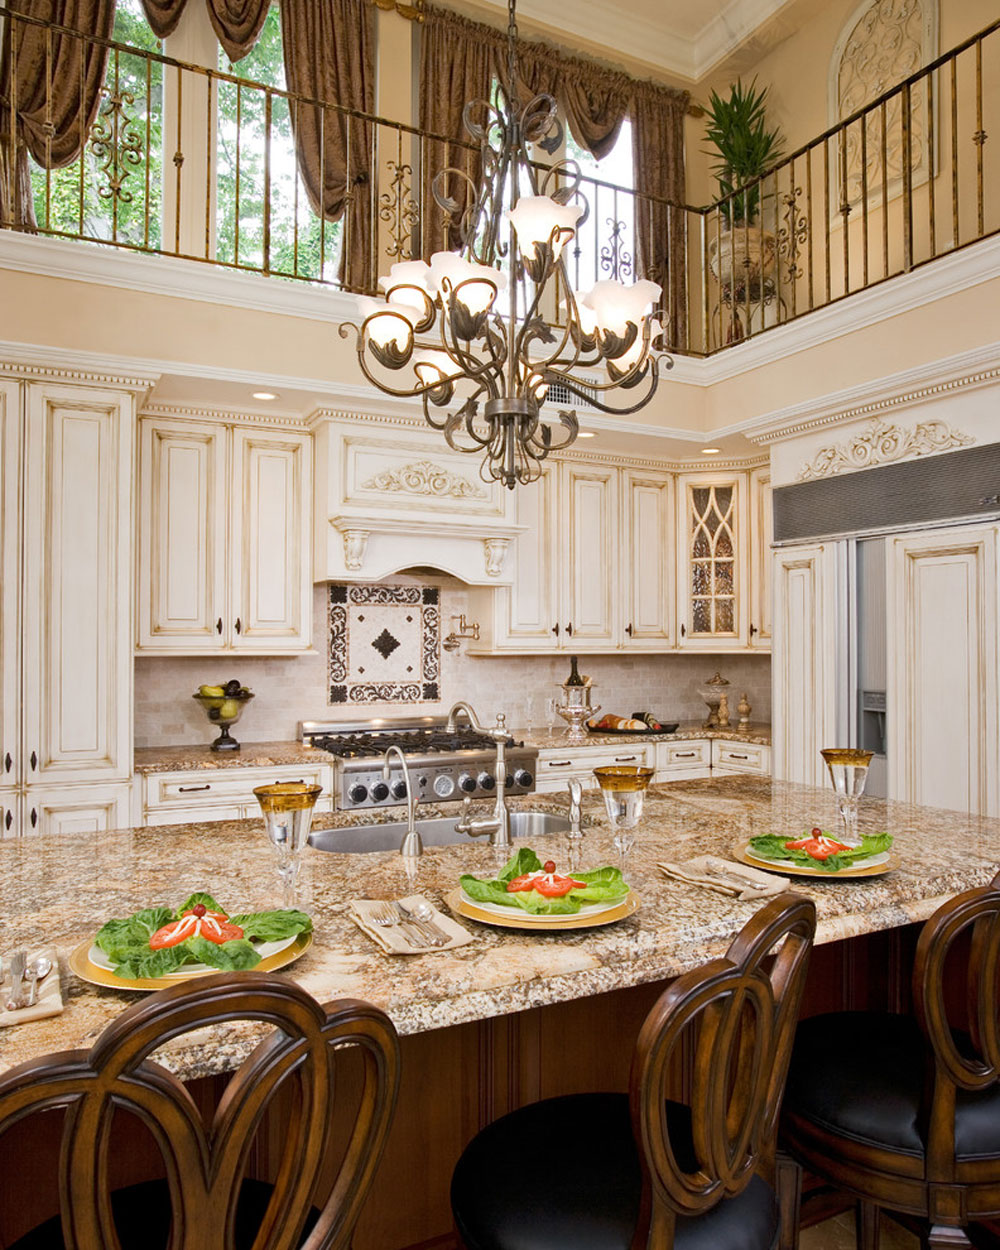 2-story-kitchen-remodeling-by-renaissance-kitchen-and-house- French country kitchen: decor, cabinets, ideas and curtains